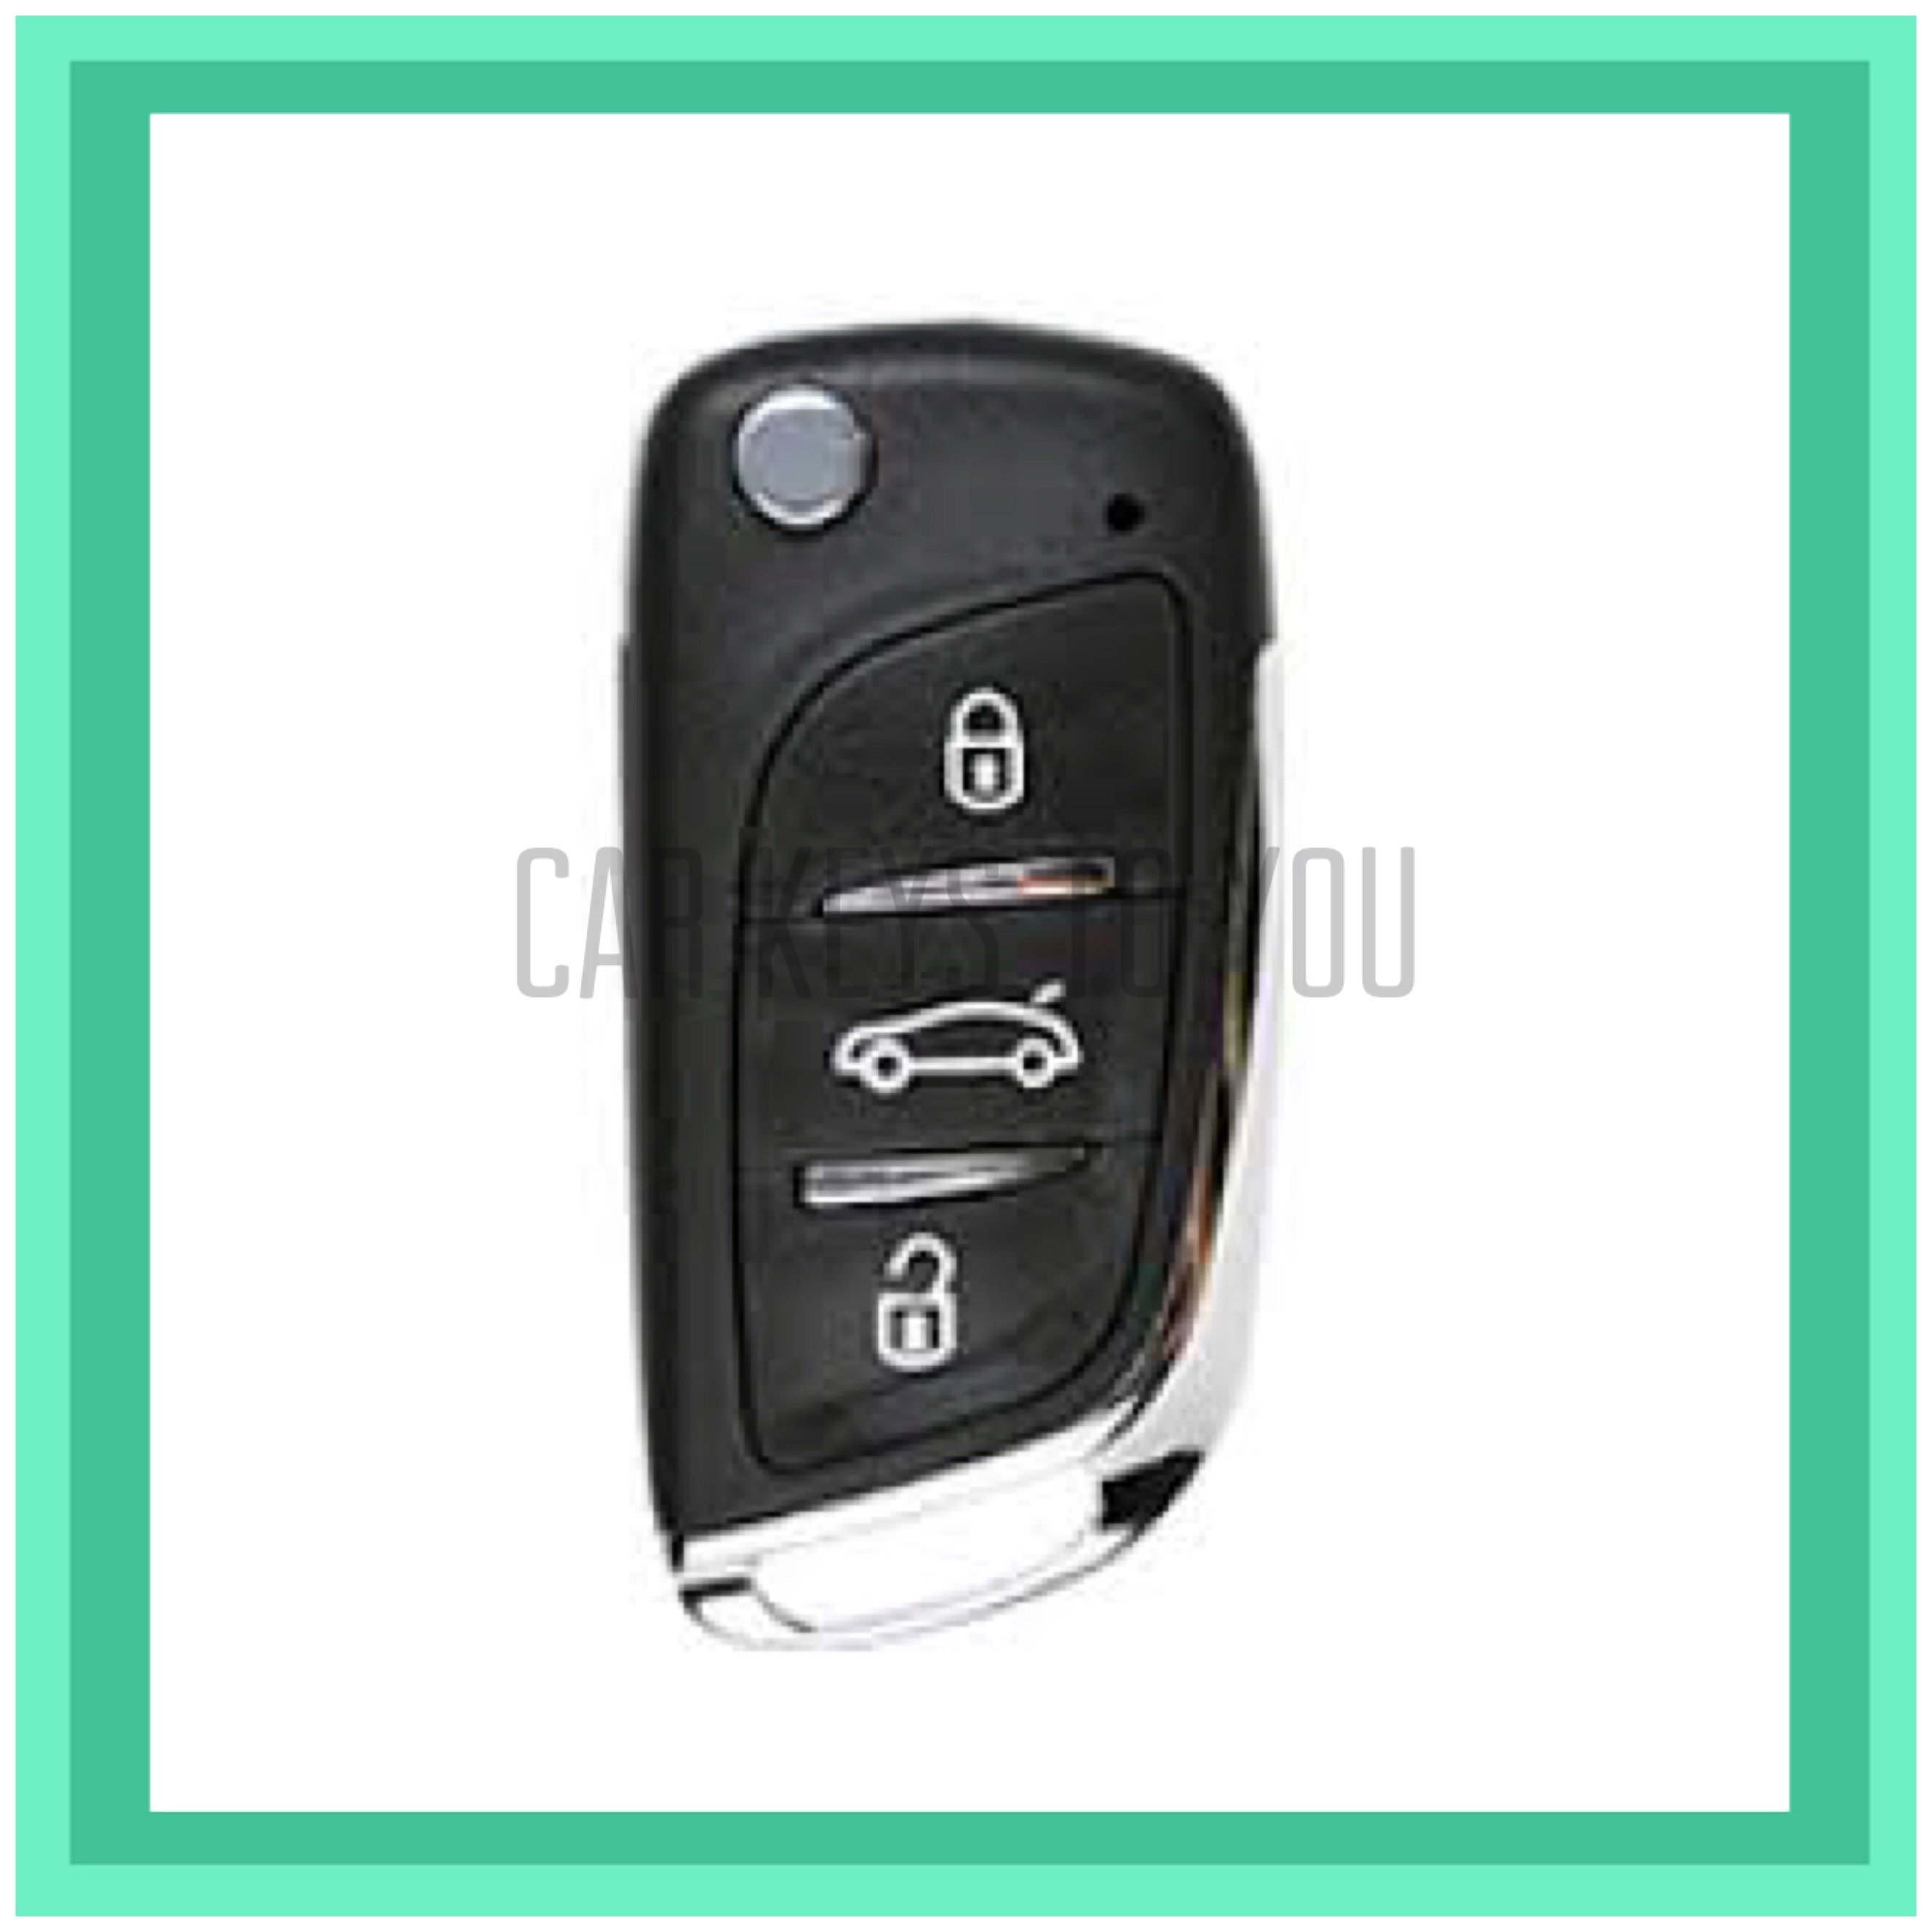 MITSUBISHI LANCER Car Key and Remote, Suit CH 2003-2007